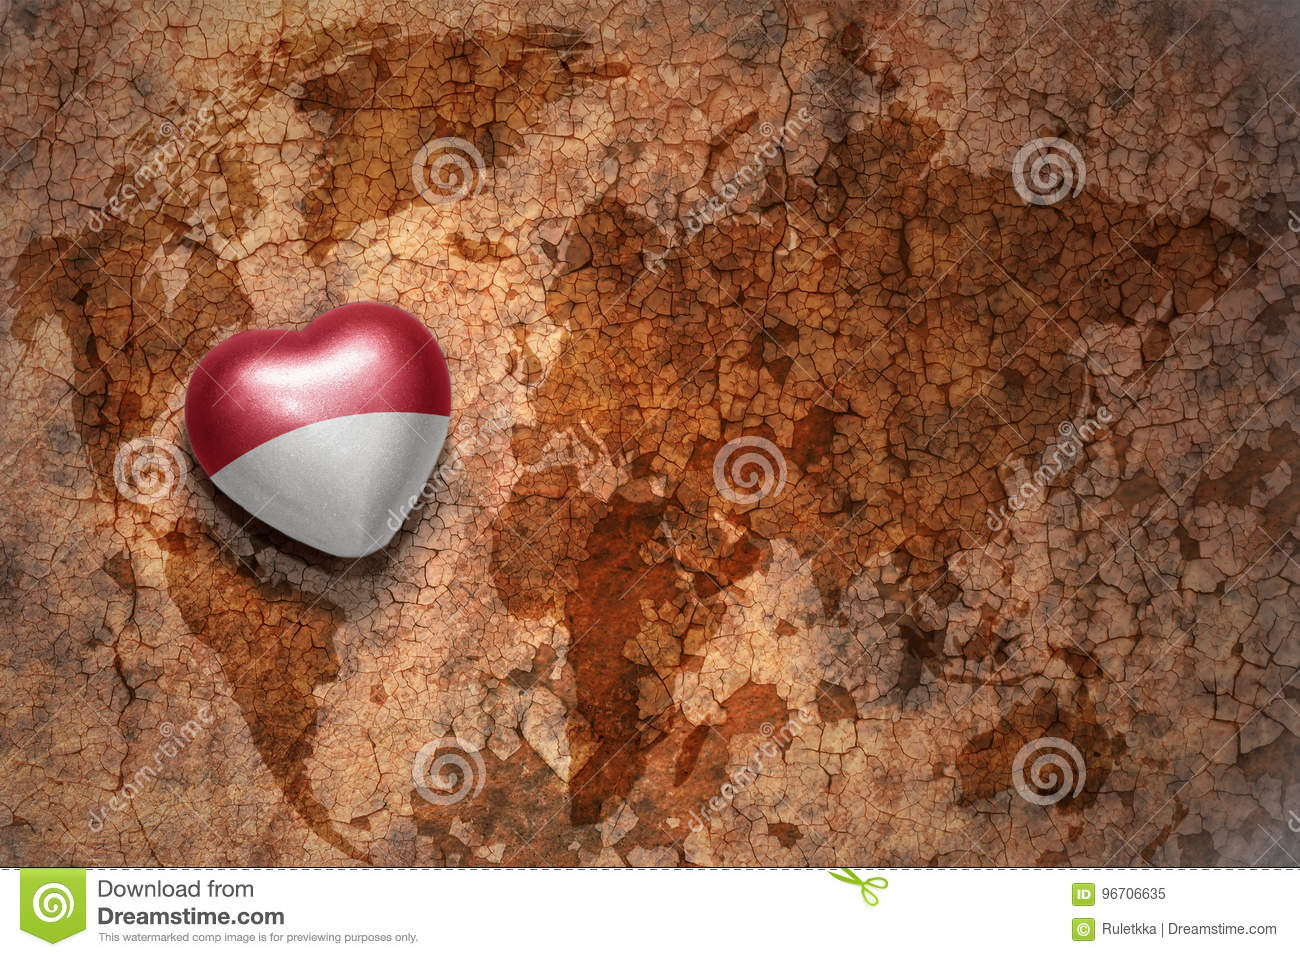 Heart with national flag of indonesia on a vintage world map crack paper background.